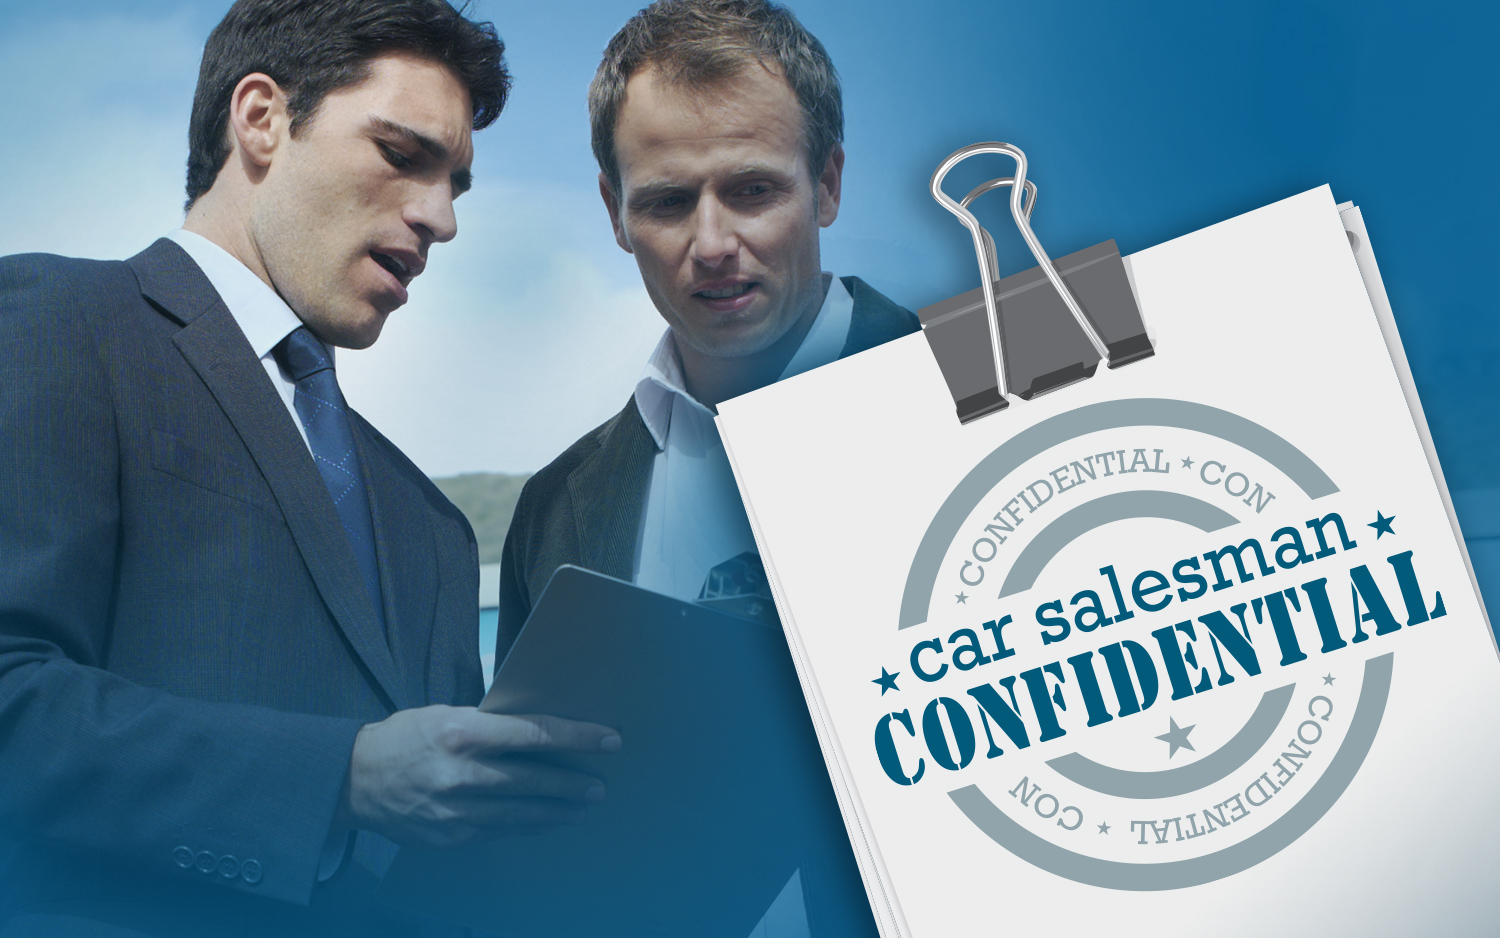 Car Salesman Confidential: Beware These 2 Dirty Tricks